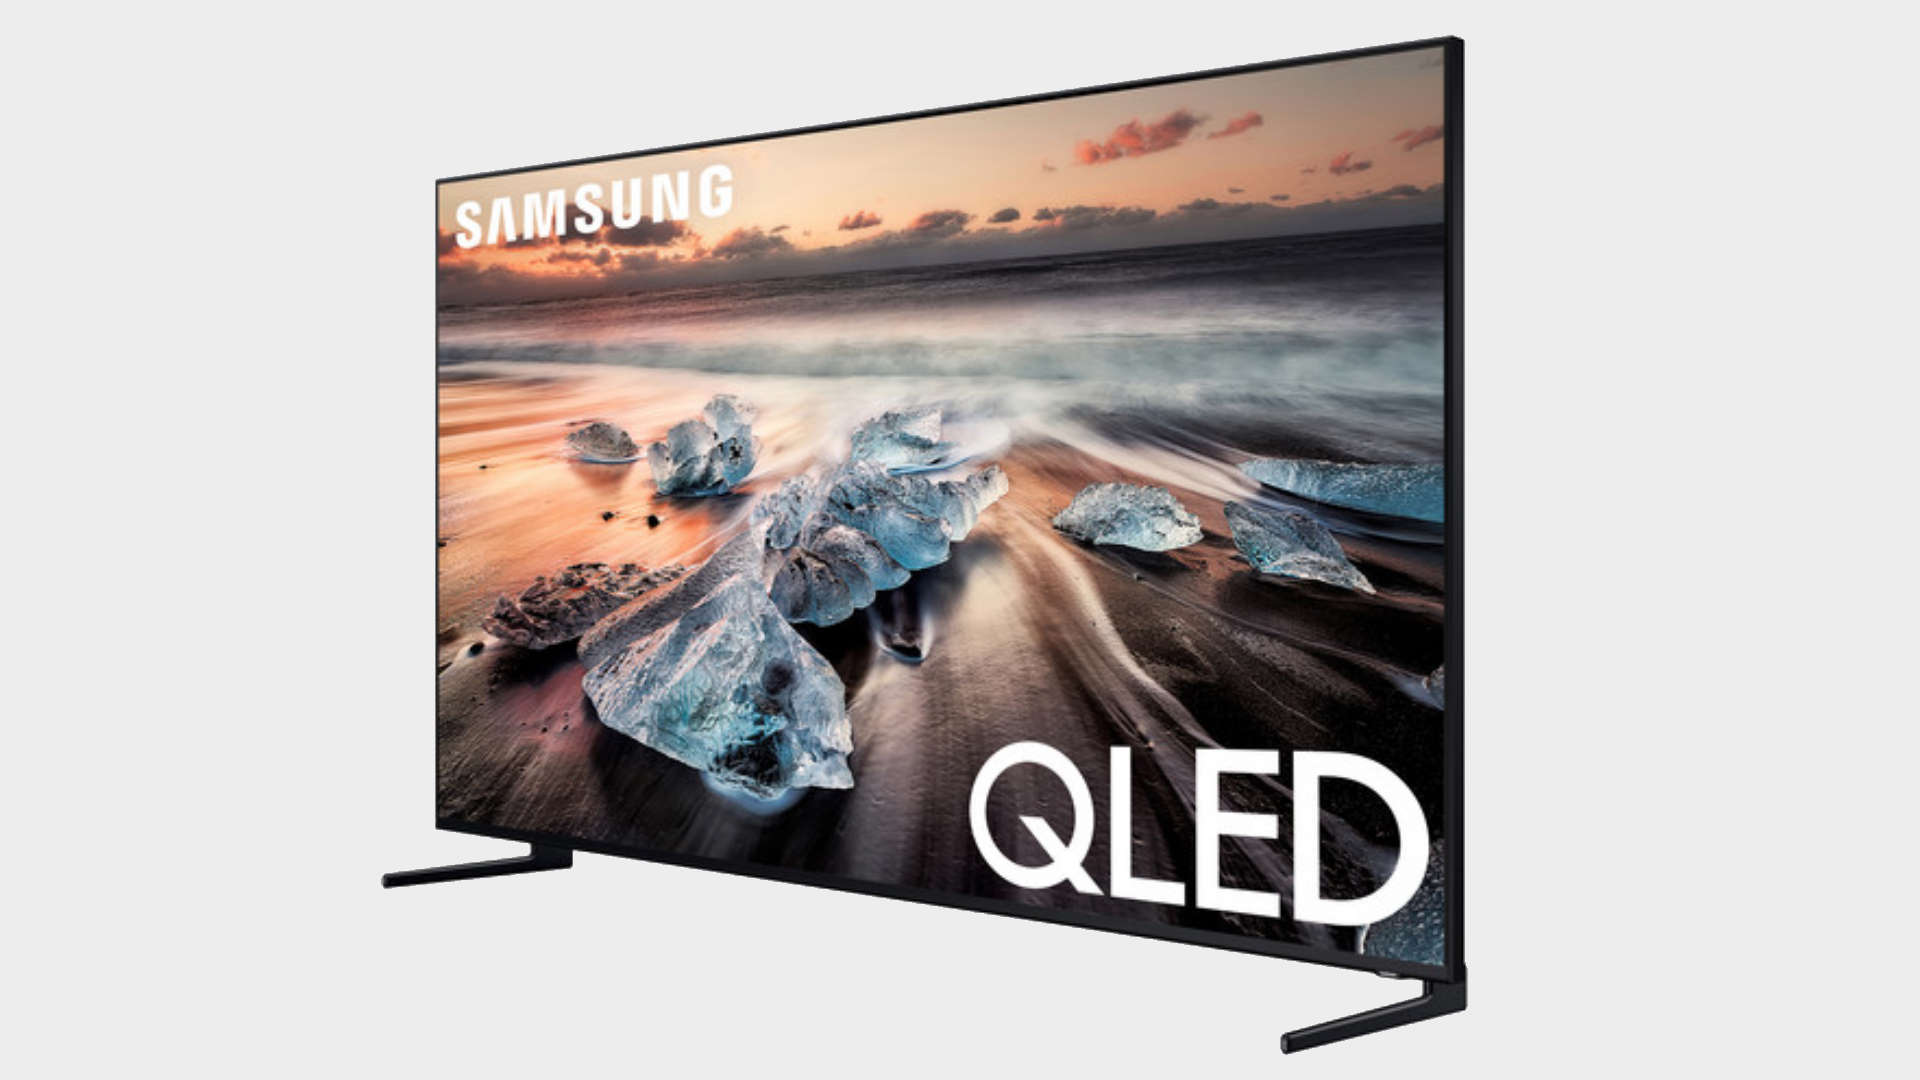 Samsung Q900 rediculous price black friday deal